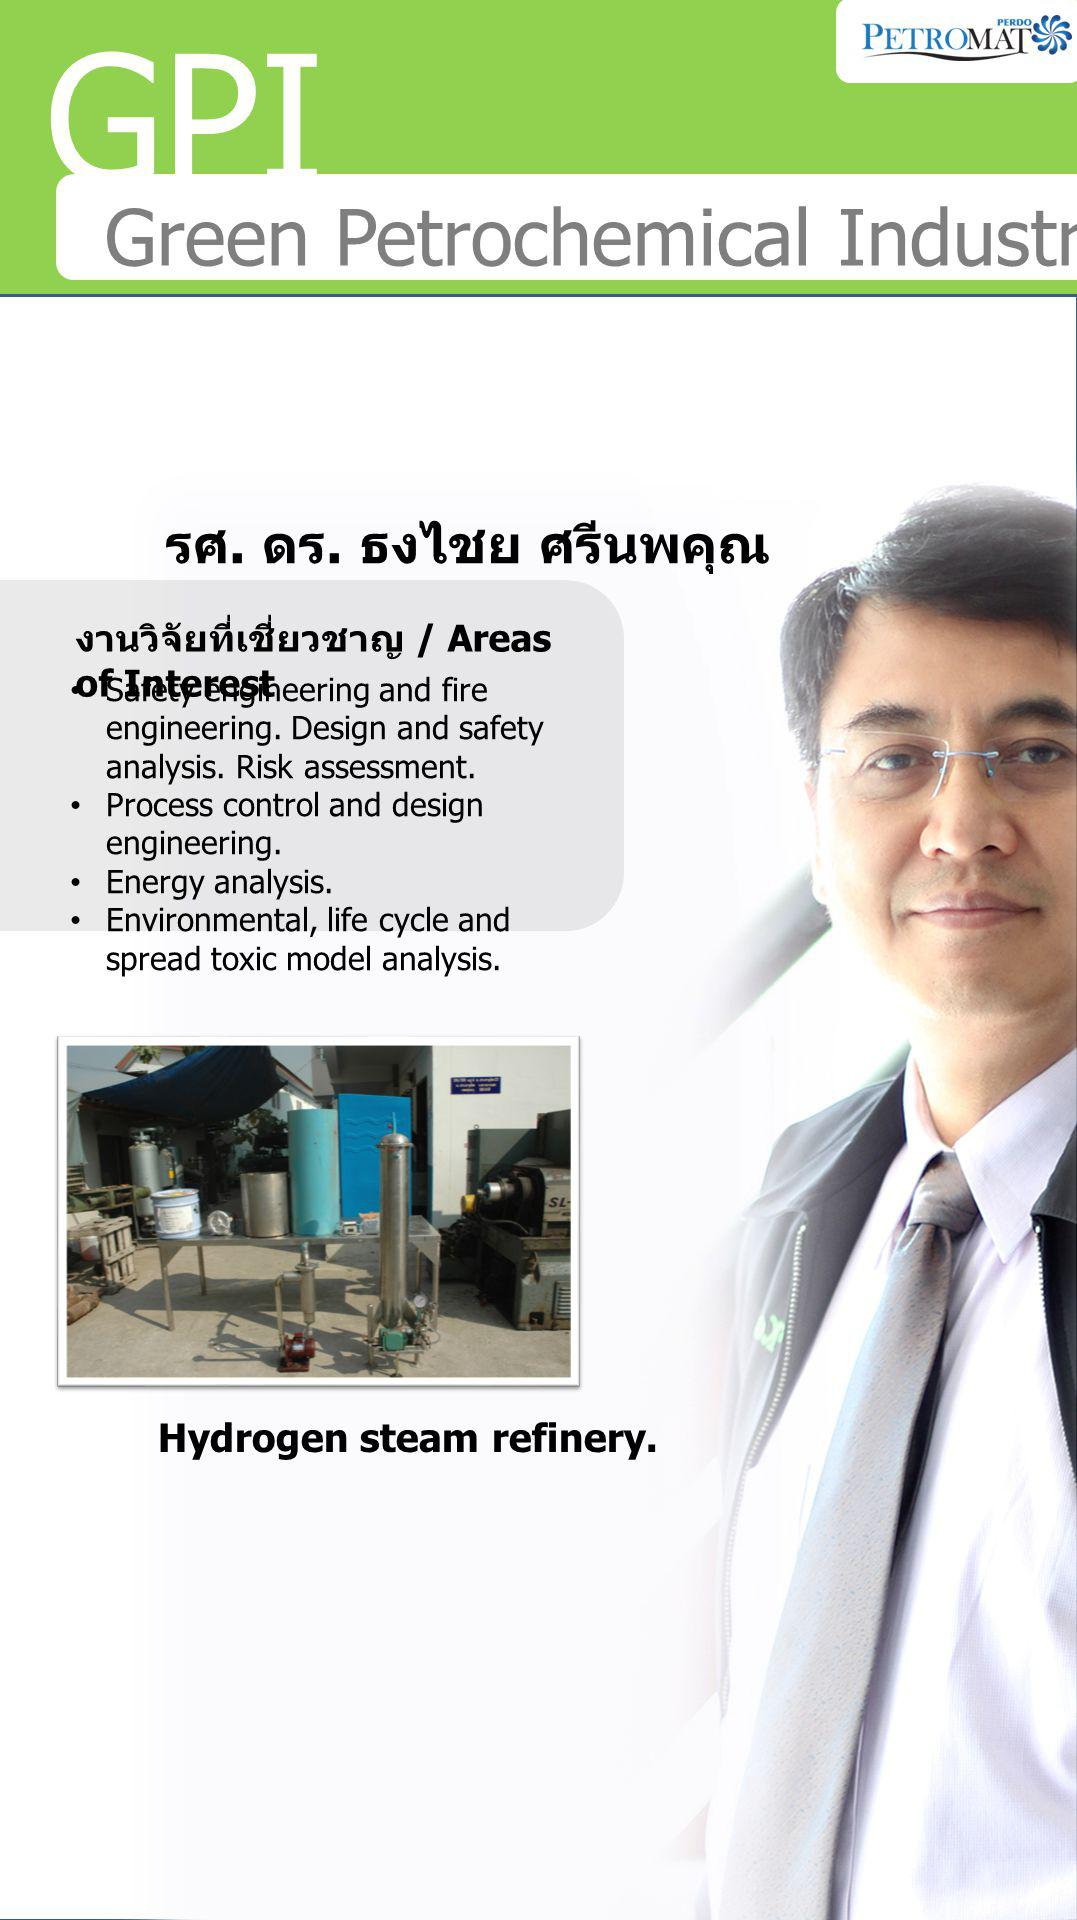 HPSM SP MFE GPI Center of Excellence on Petrochemical and Materials Technology 7th floor, Chulalongkorn University Research Building, Soi Chula 12, Ph